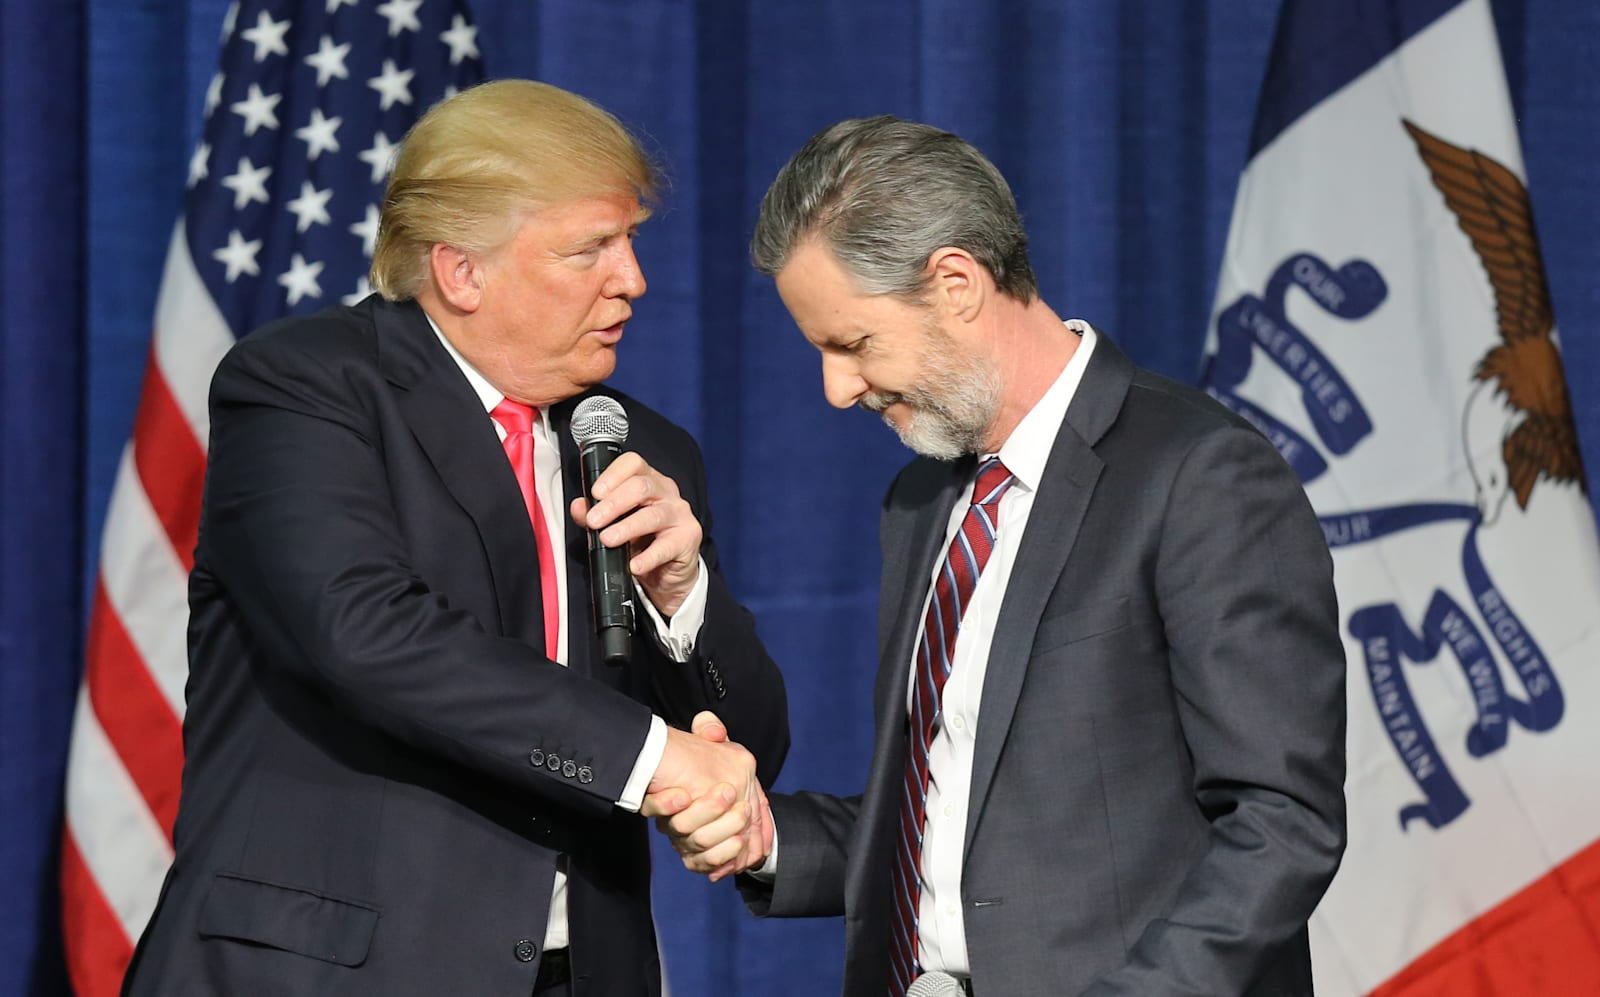 Who is Jerry Falwell Jr. and why is he reforming higher ...